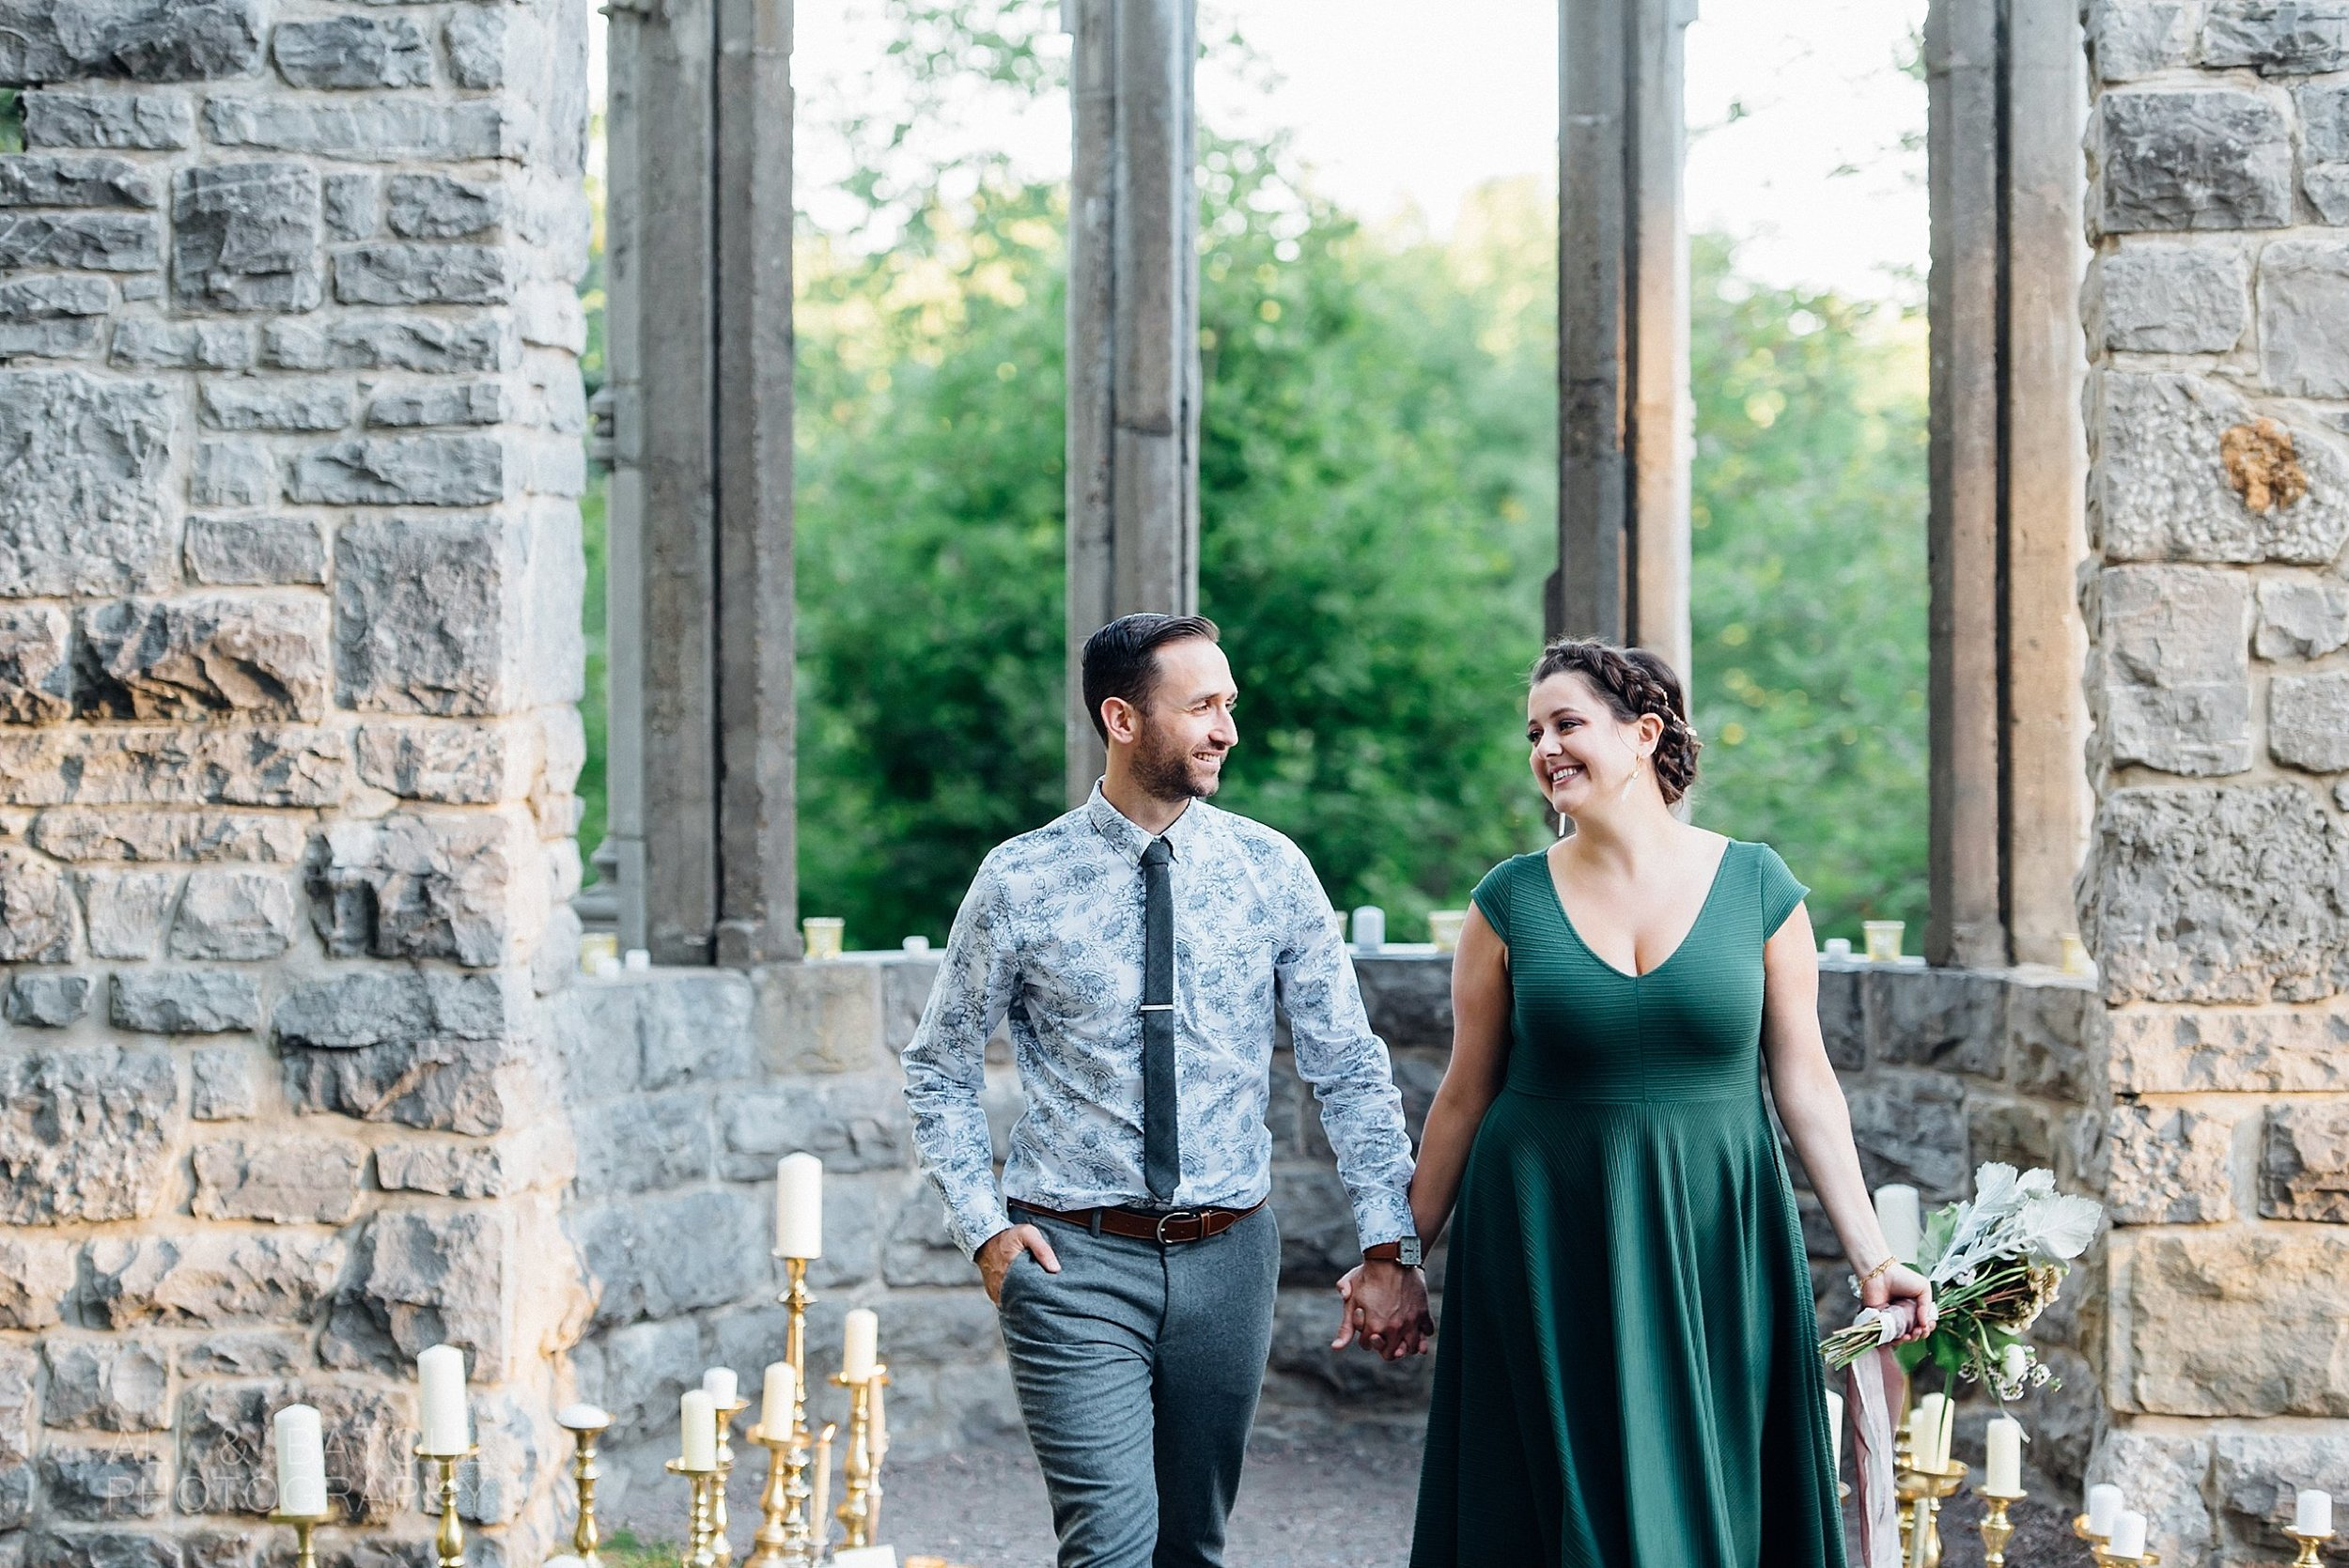 Ali and Batoul Photography - light, airy, indie documentary Ottawa wedding photographer_0073.jpg